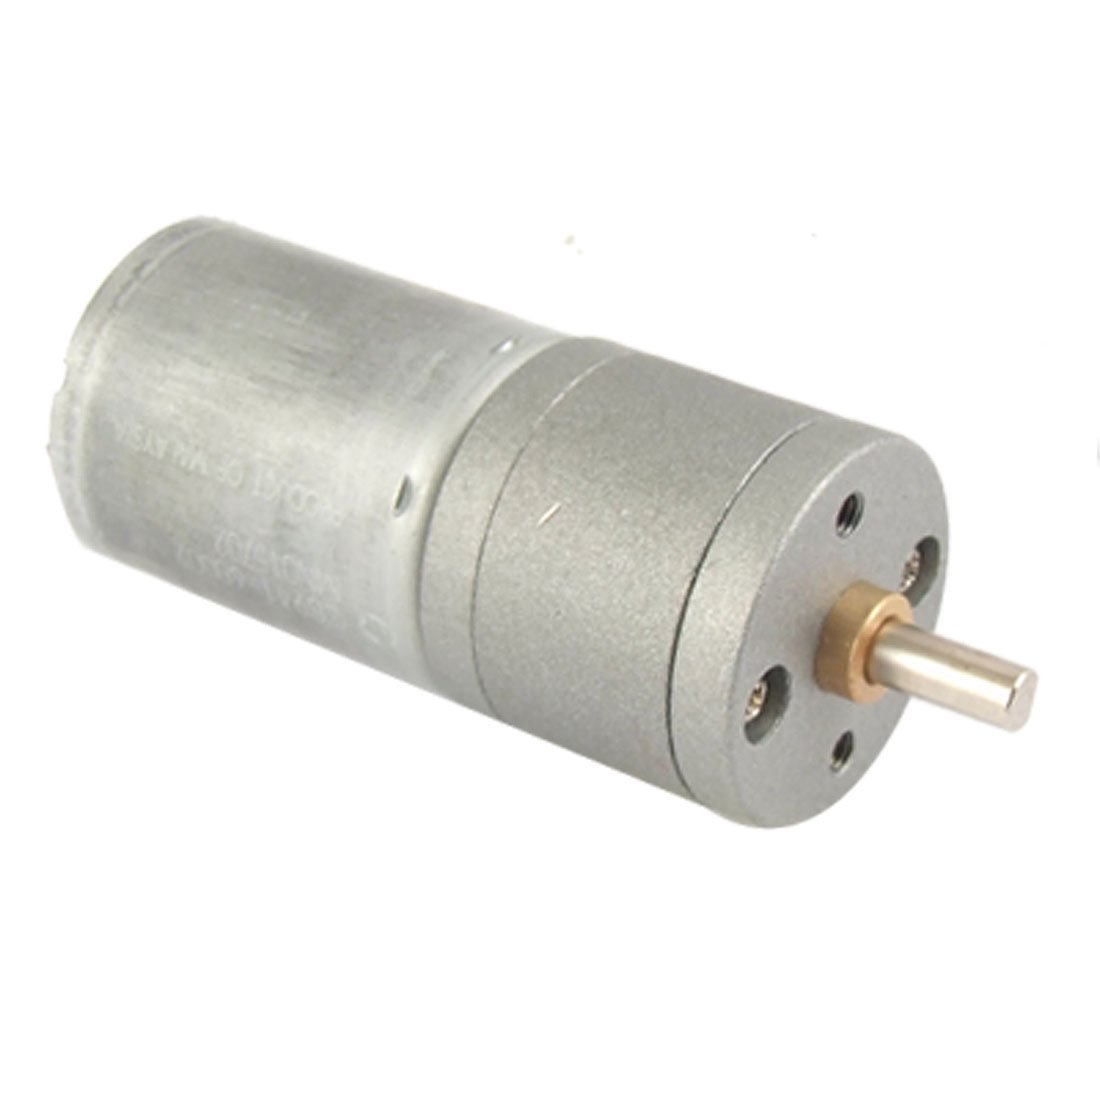 все цены на IMC Hot 12V DC 100RPM High Torque Gear Box Electric Motor 25mm онлайн